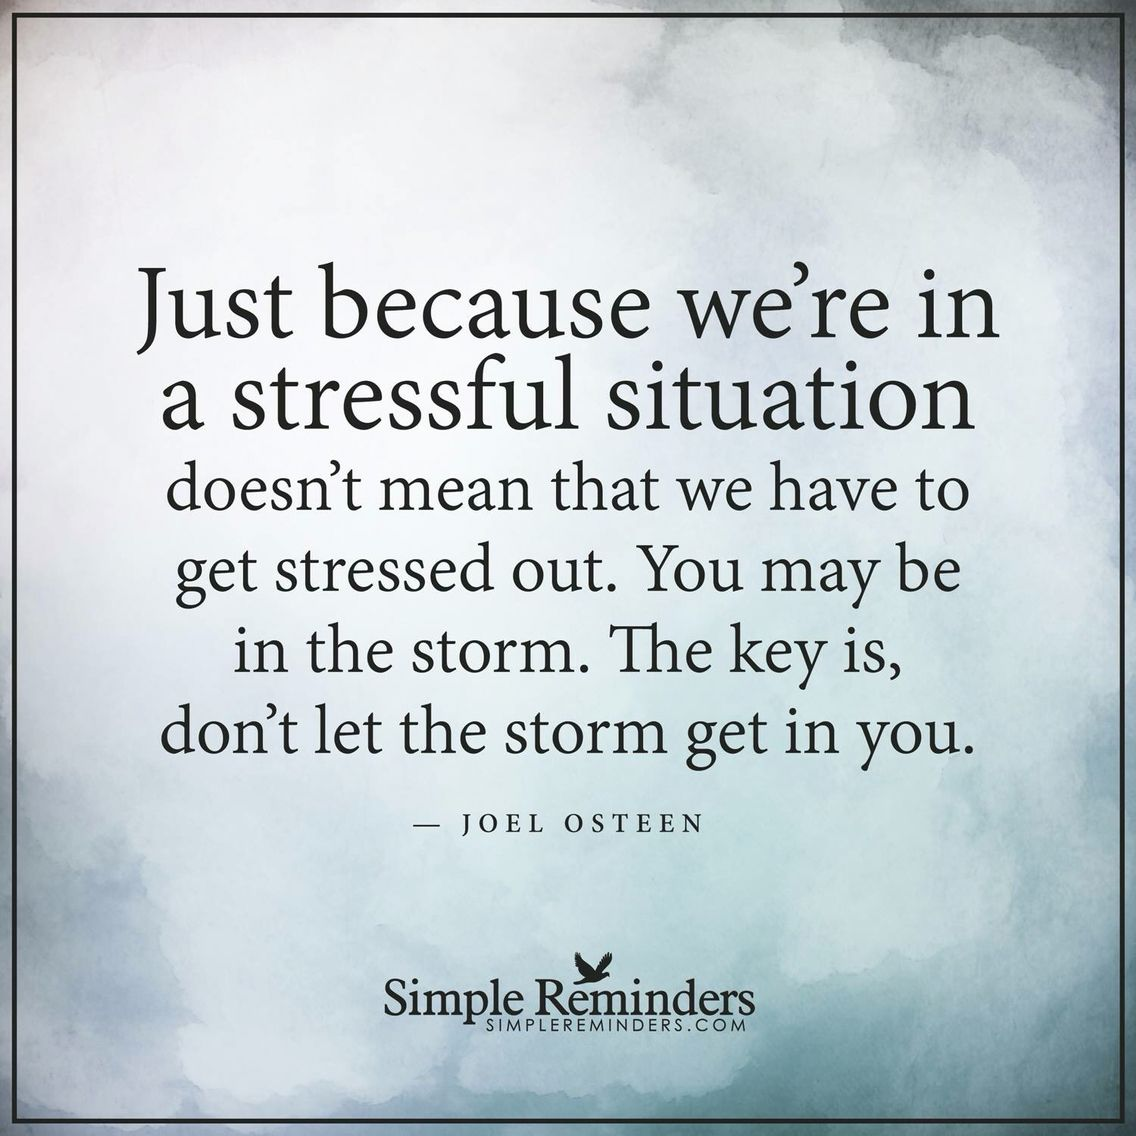 Life Stress Quotes Unfortunately I Can't Control That My Anxiety Or Panic Attacks